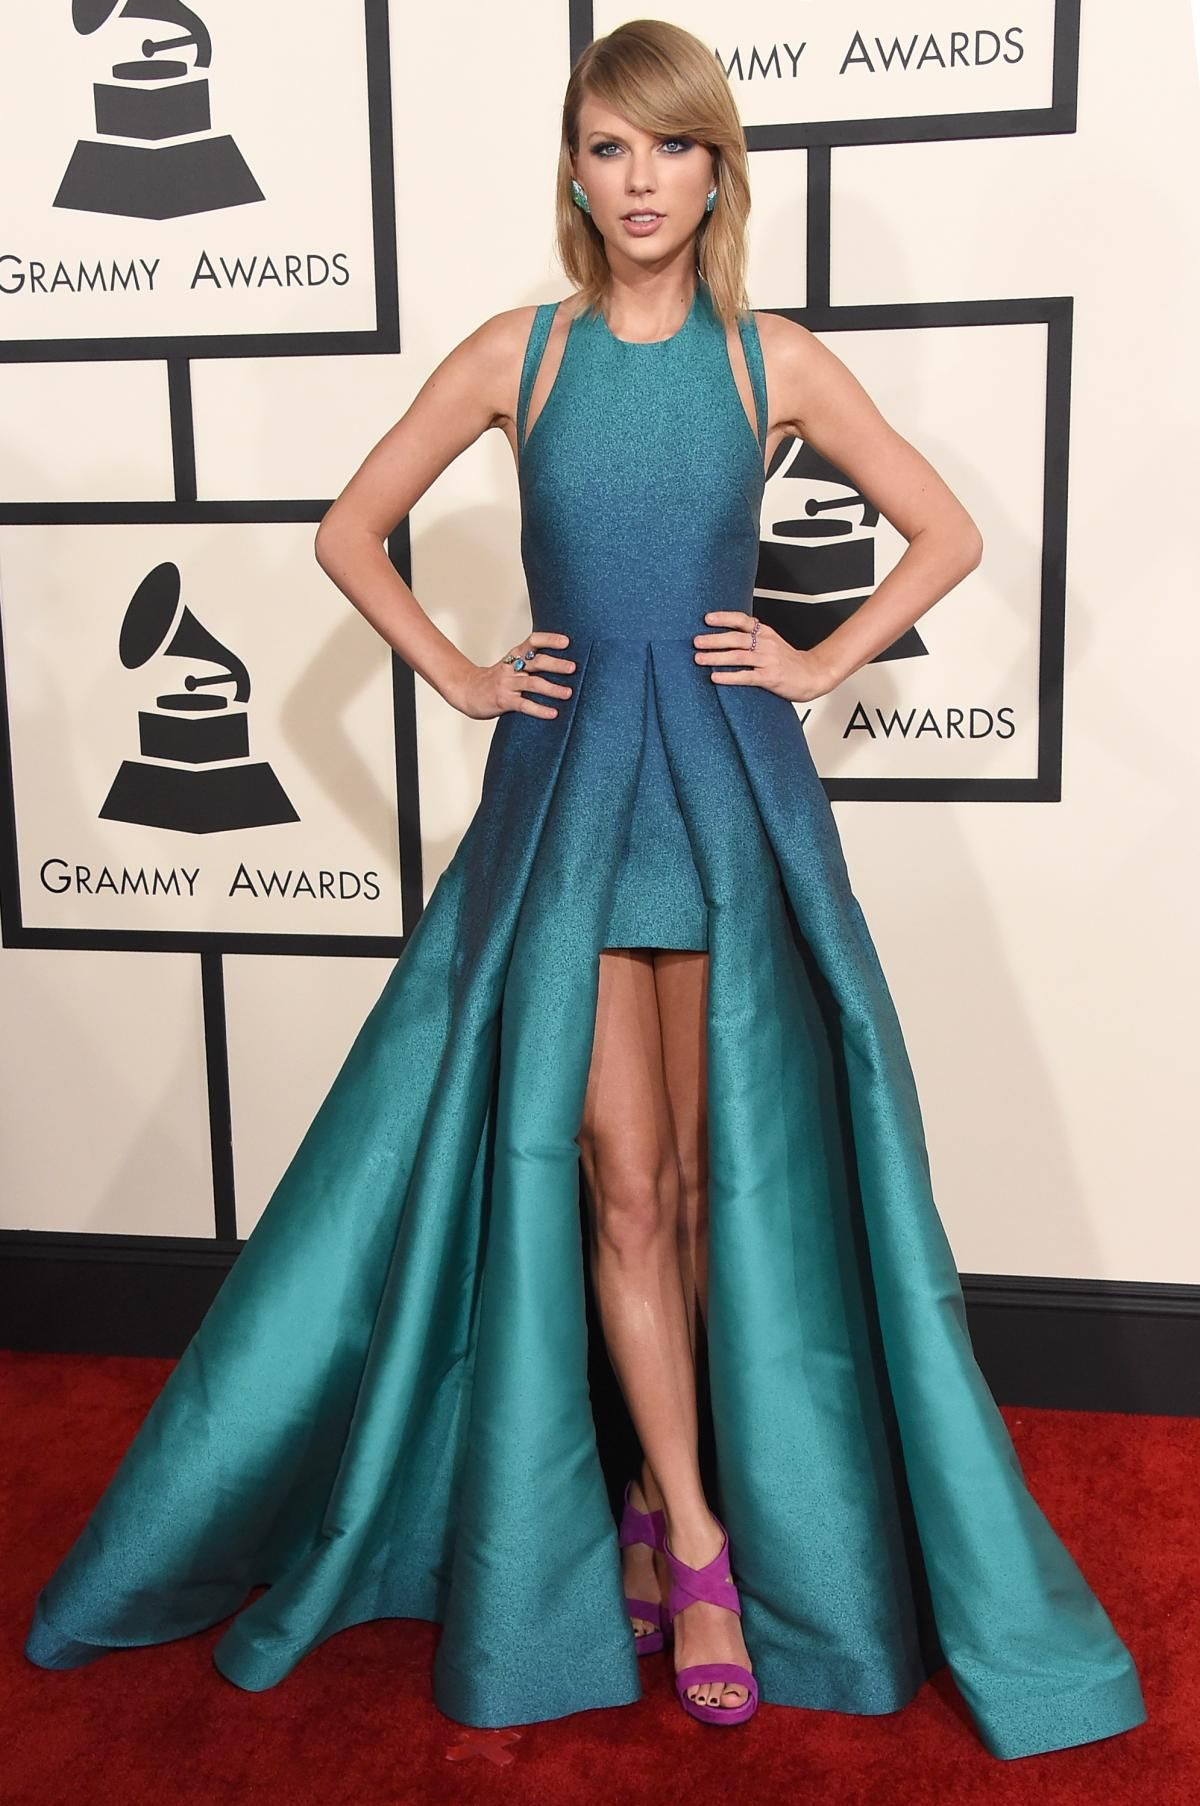 Taylor Swift Grammys 2015 Best And Worst Red Carpet Looks Red Carpet Dresses Best Taylor Swift Dress Nice Dresses